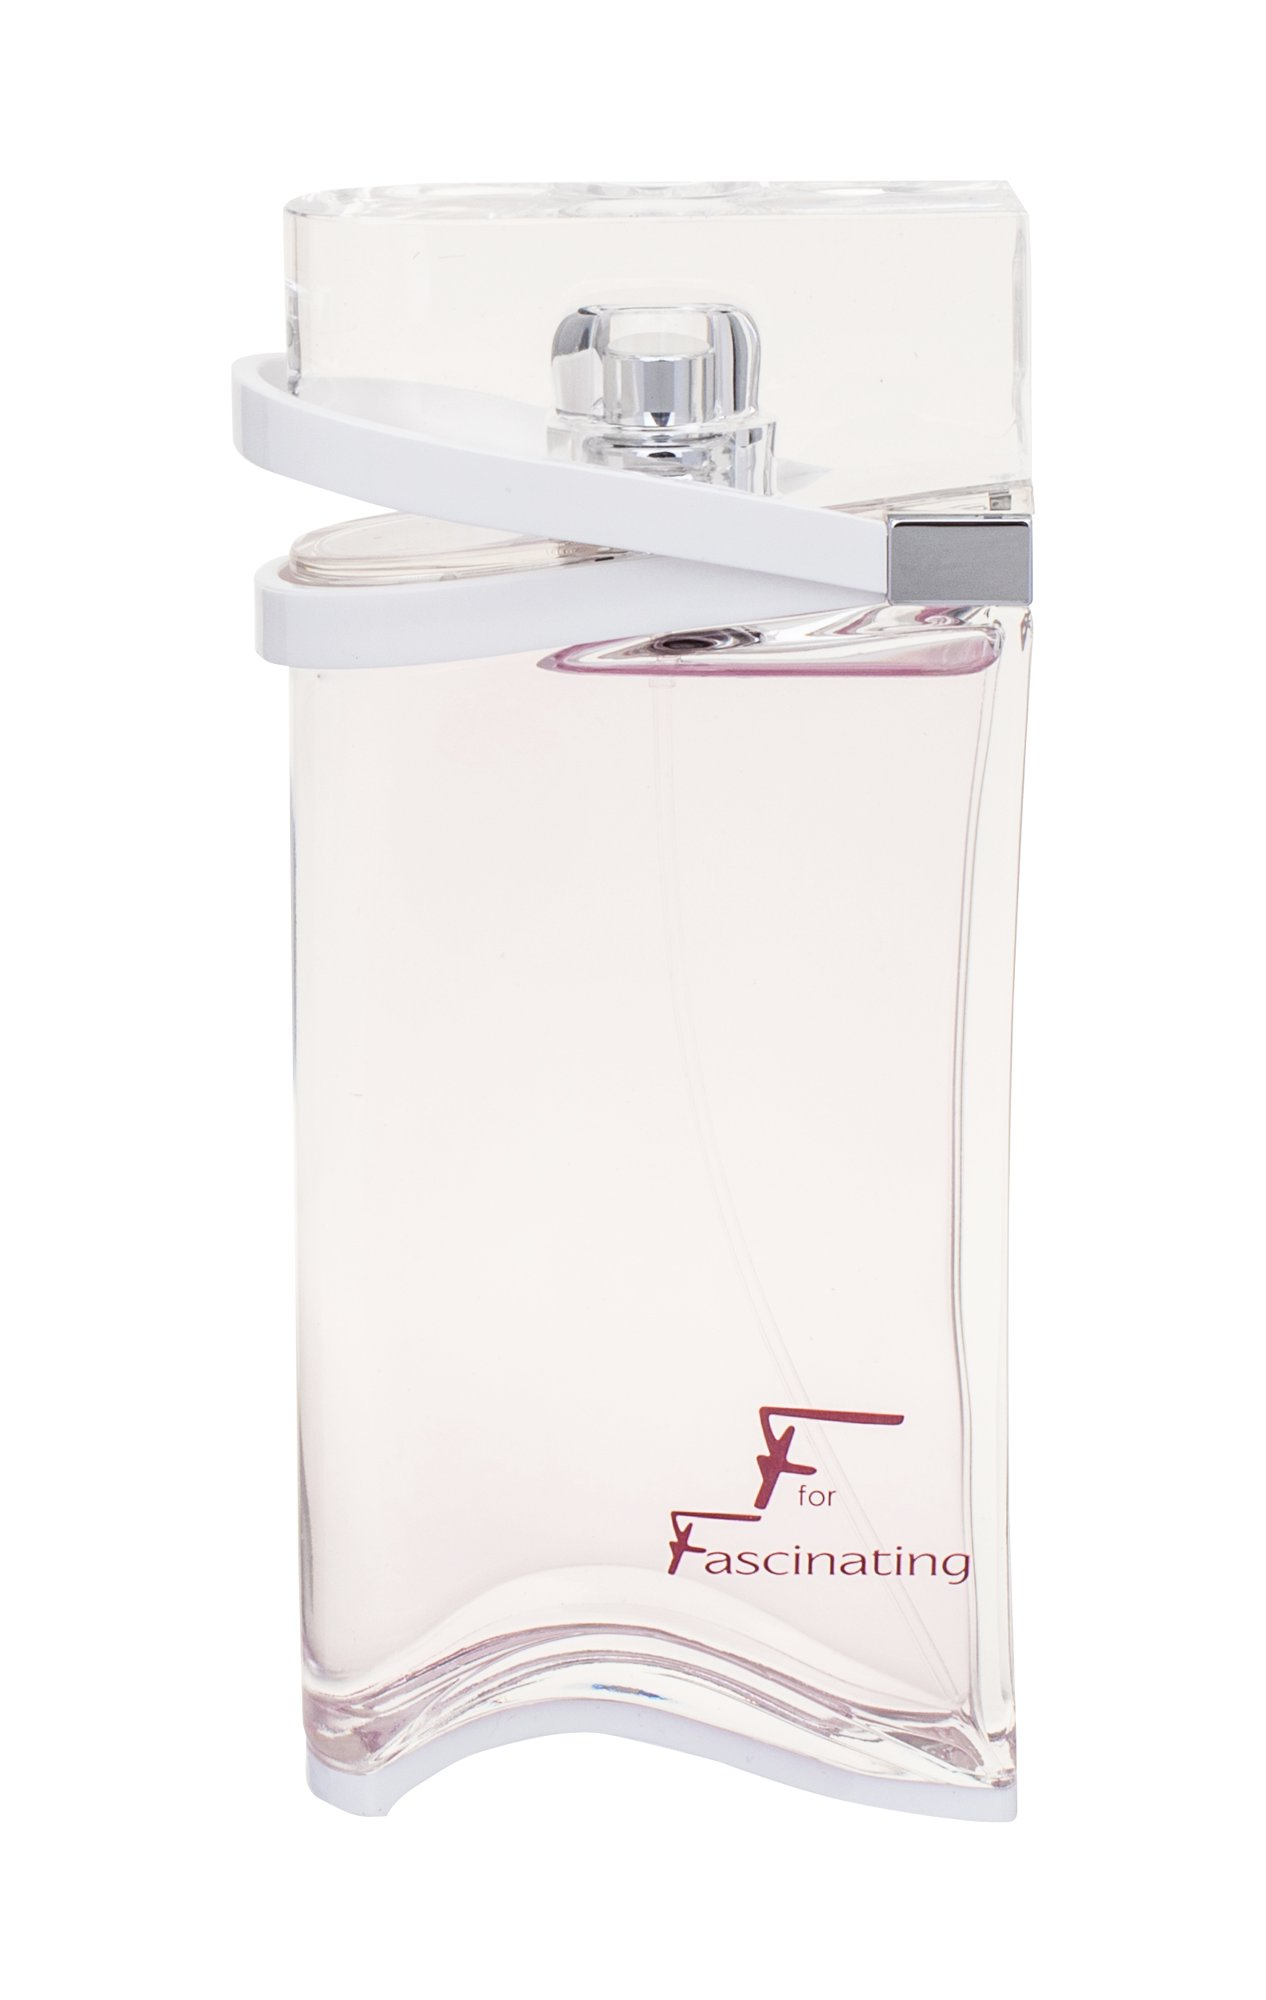 Salvatore Ferragamo F for Fascinating, edt 90ml